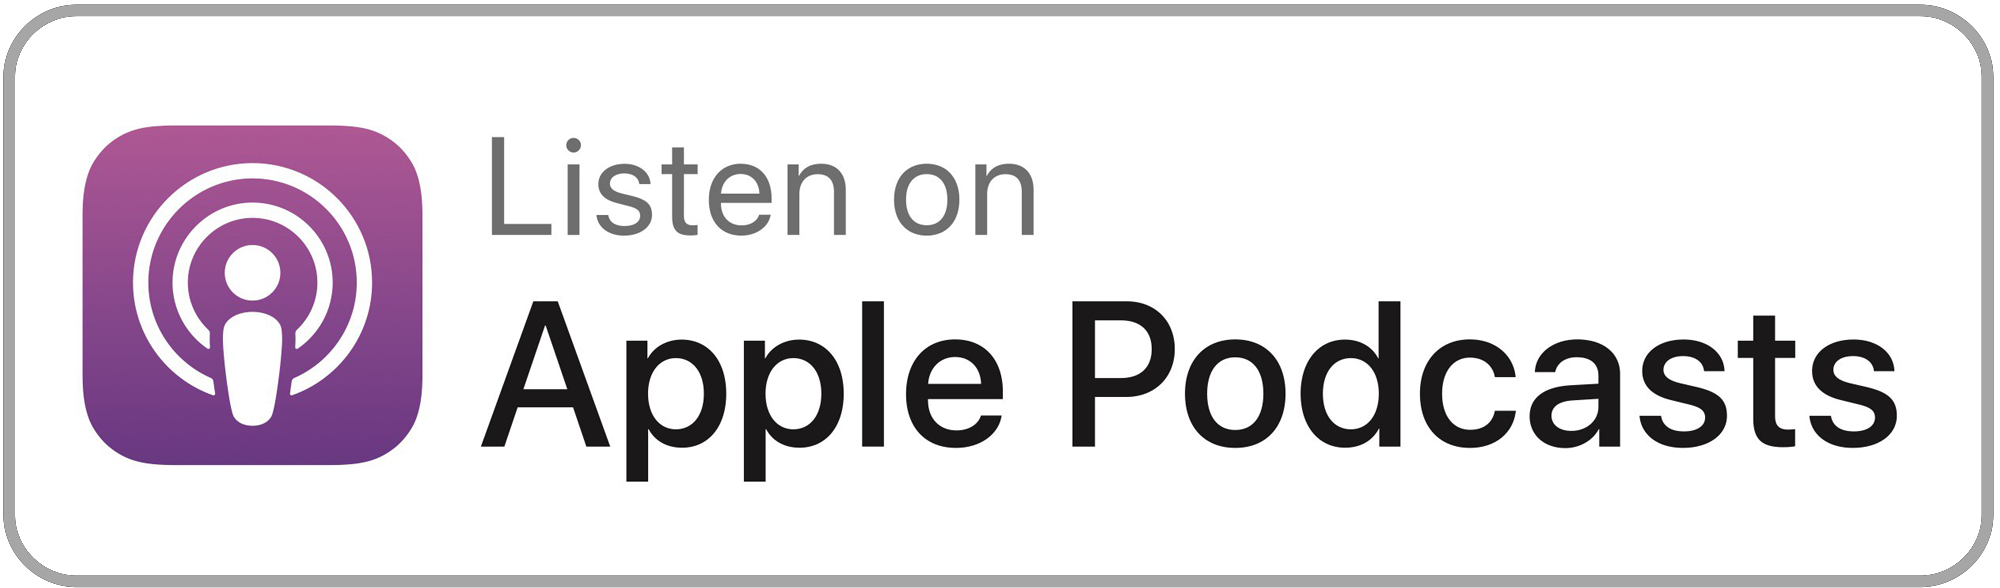 Apple_podcasts.png